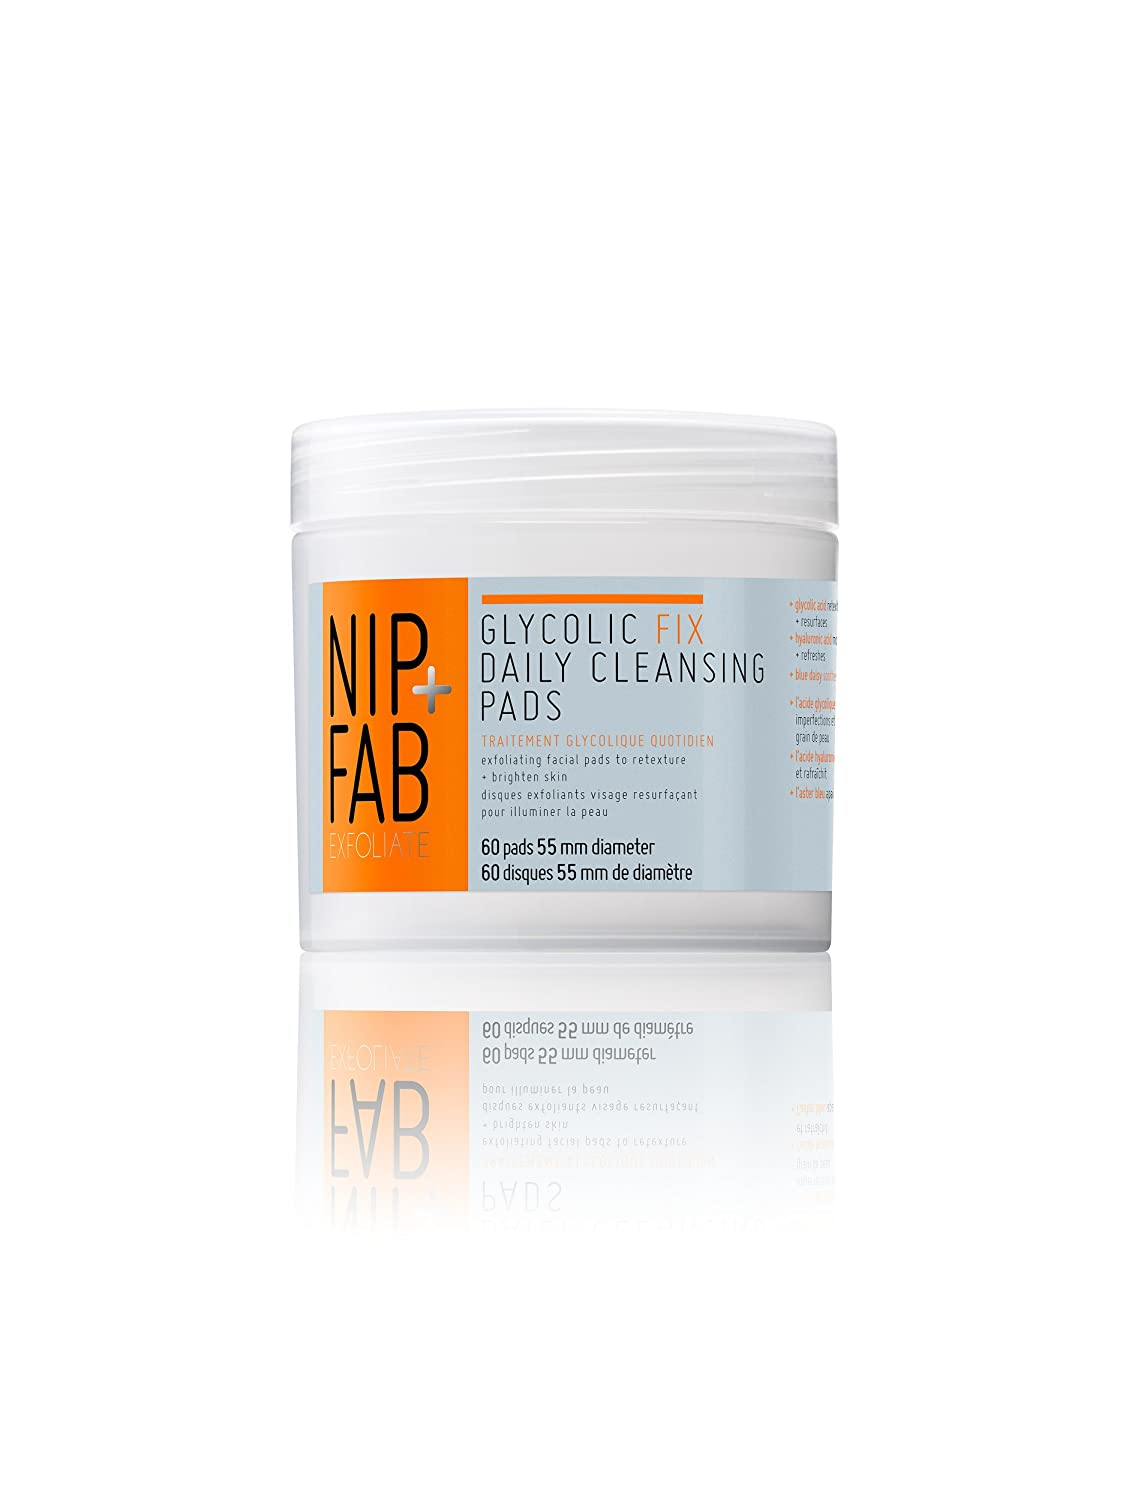 Image result for glycolic fix pads